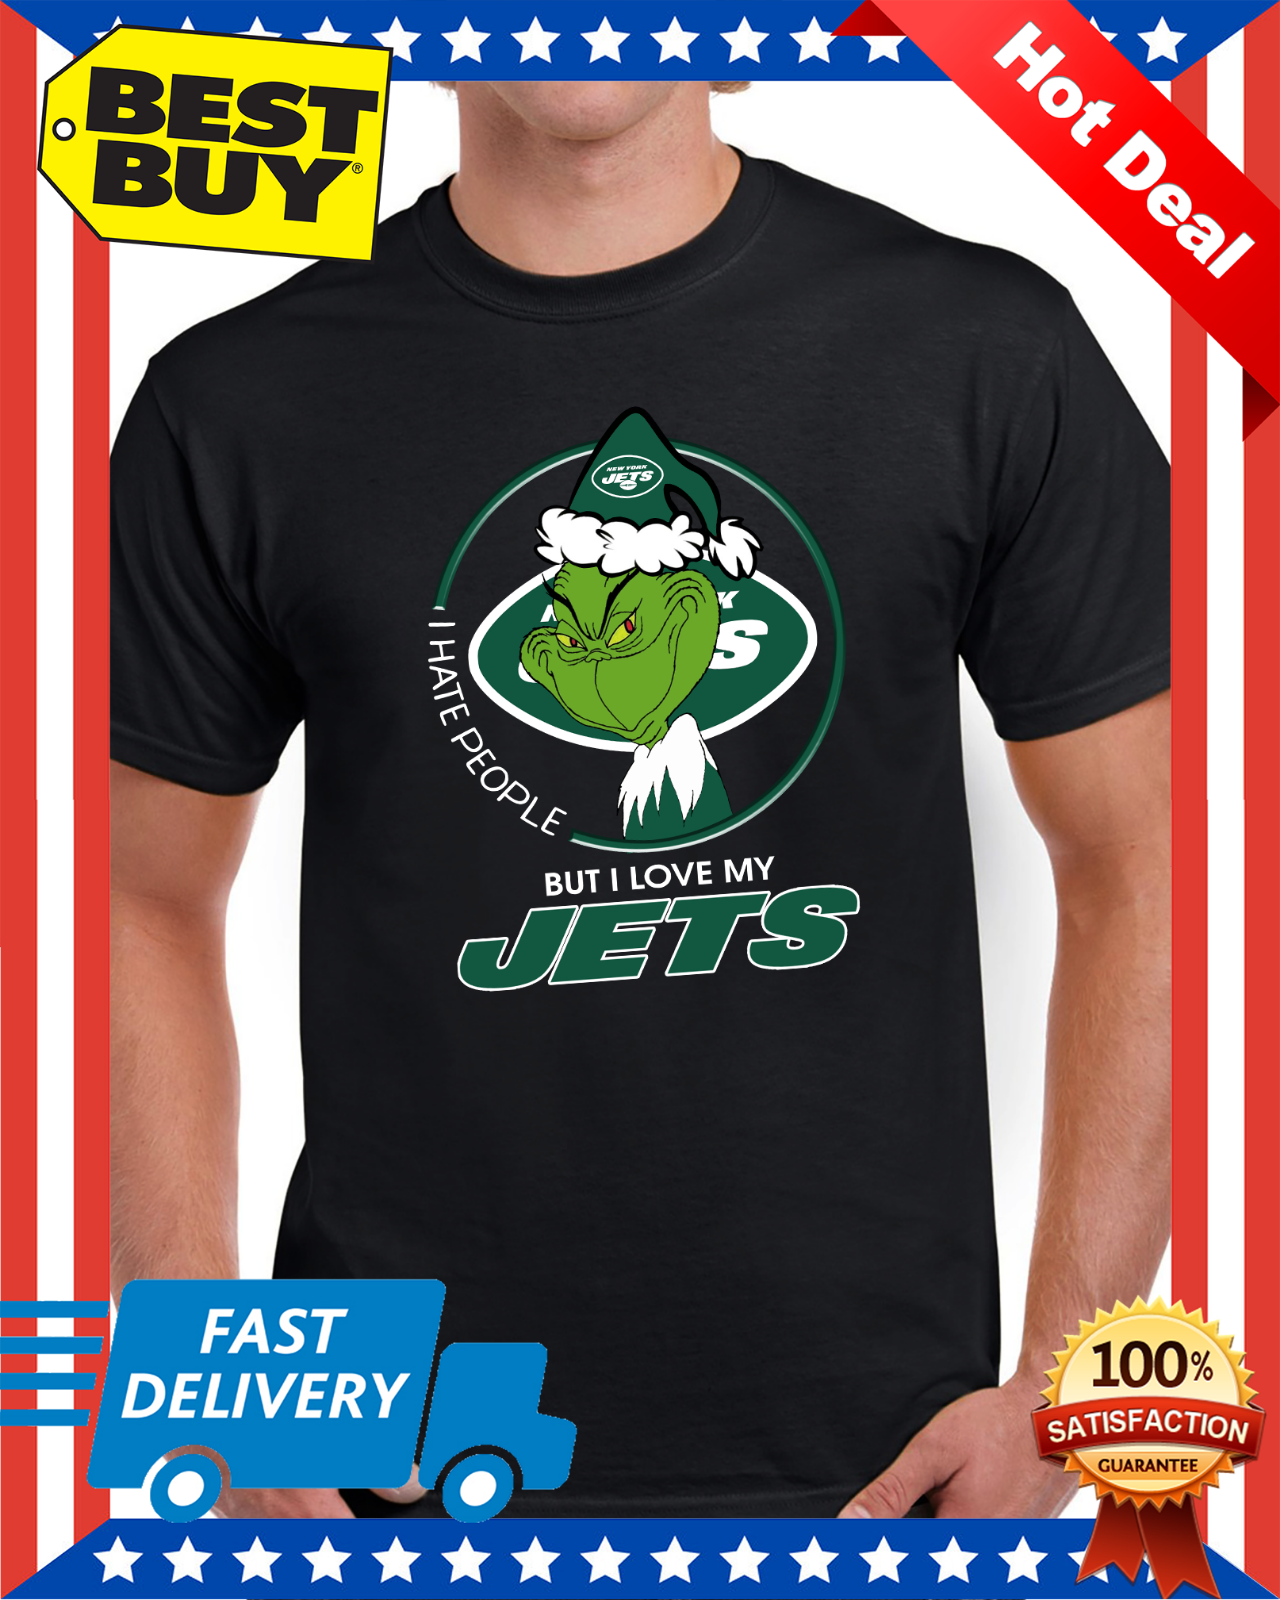 I Hate People But I Love My New York Jets Grinch NFL T-Shirt Regular Size M-3XL